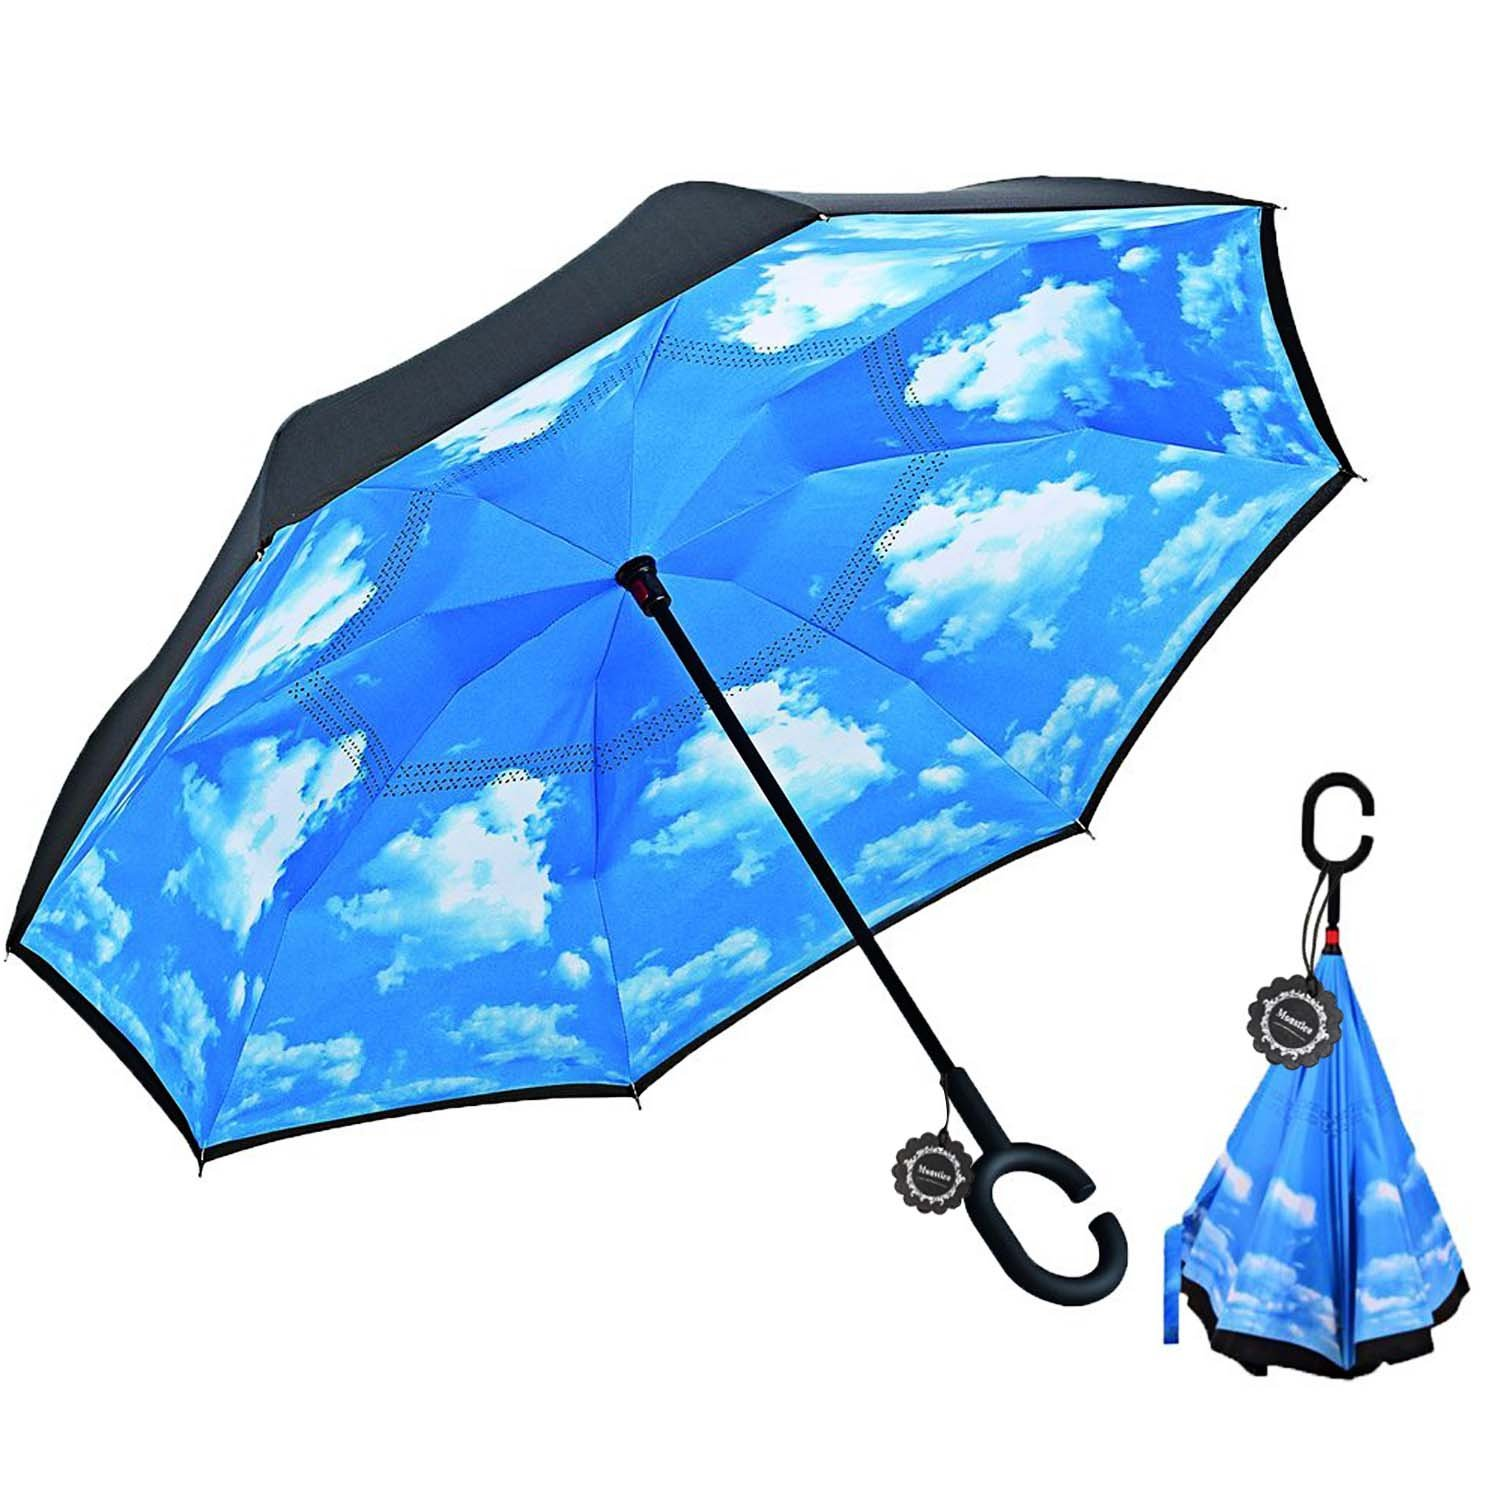 Monstleo Inverted Umbrella,Double Layer Reverse Umbrella for Car and Outdoor Use by, Windproof UV Protection Big Straight Umbrella With C-Shaped Handle and Carrying Bag